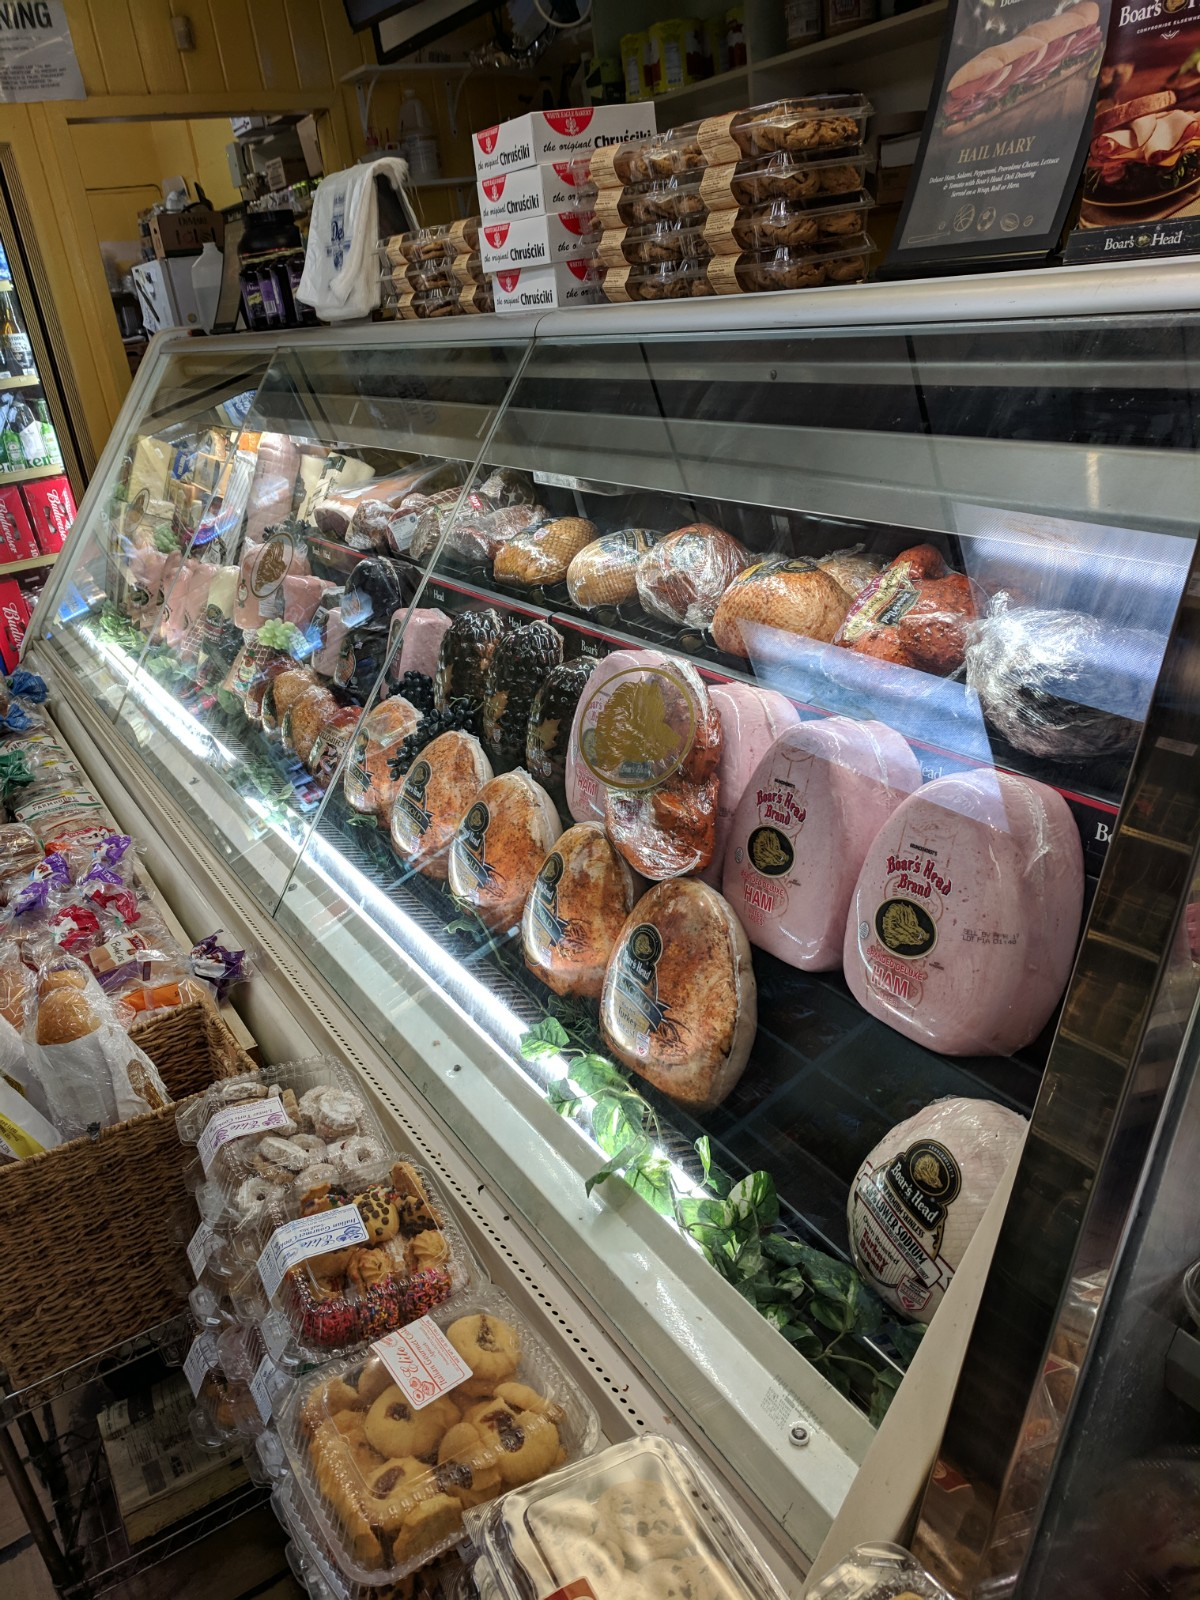 Fresh Boar's Head Meats and Cheeses